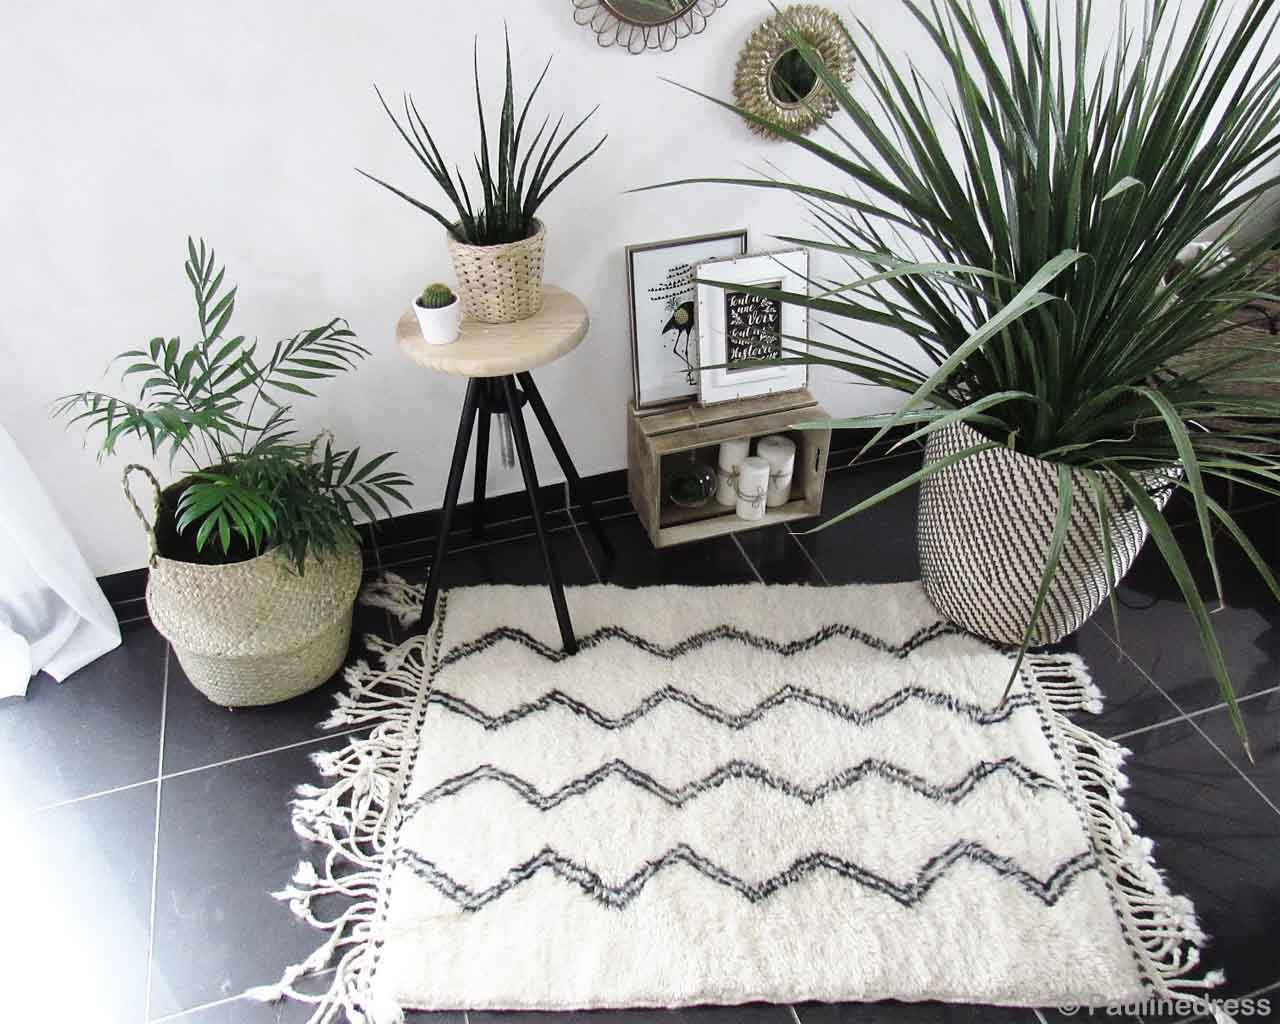 hand knotted wall hanging mirror and pots with green plants danish design capel rugs